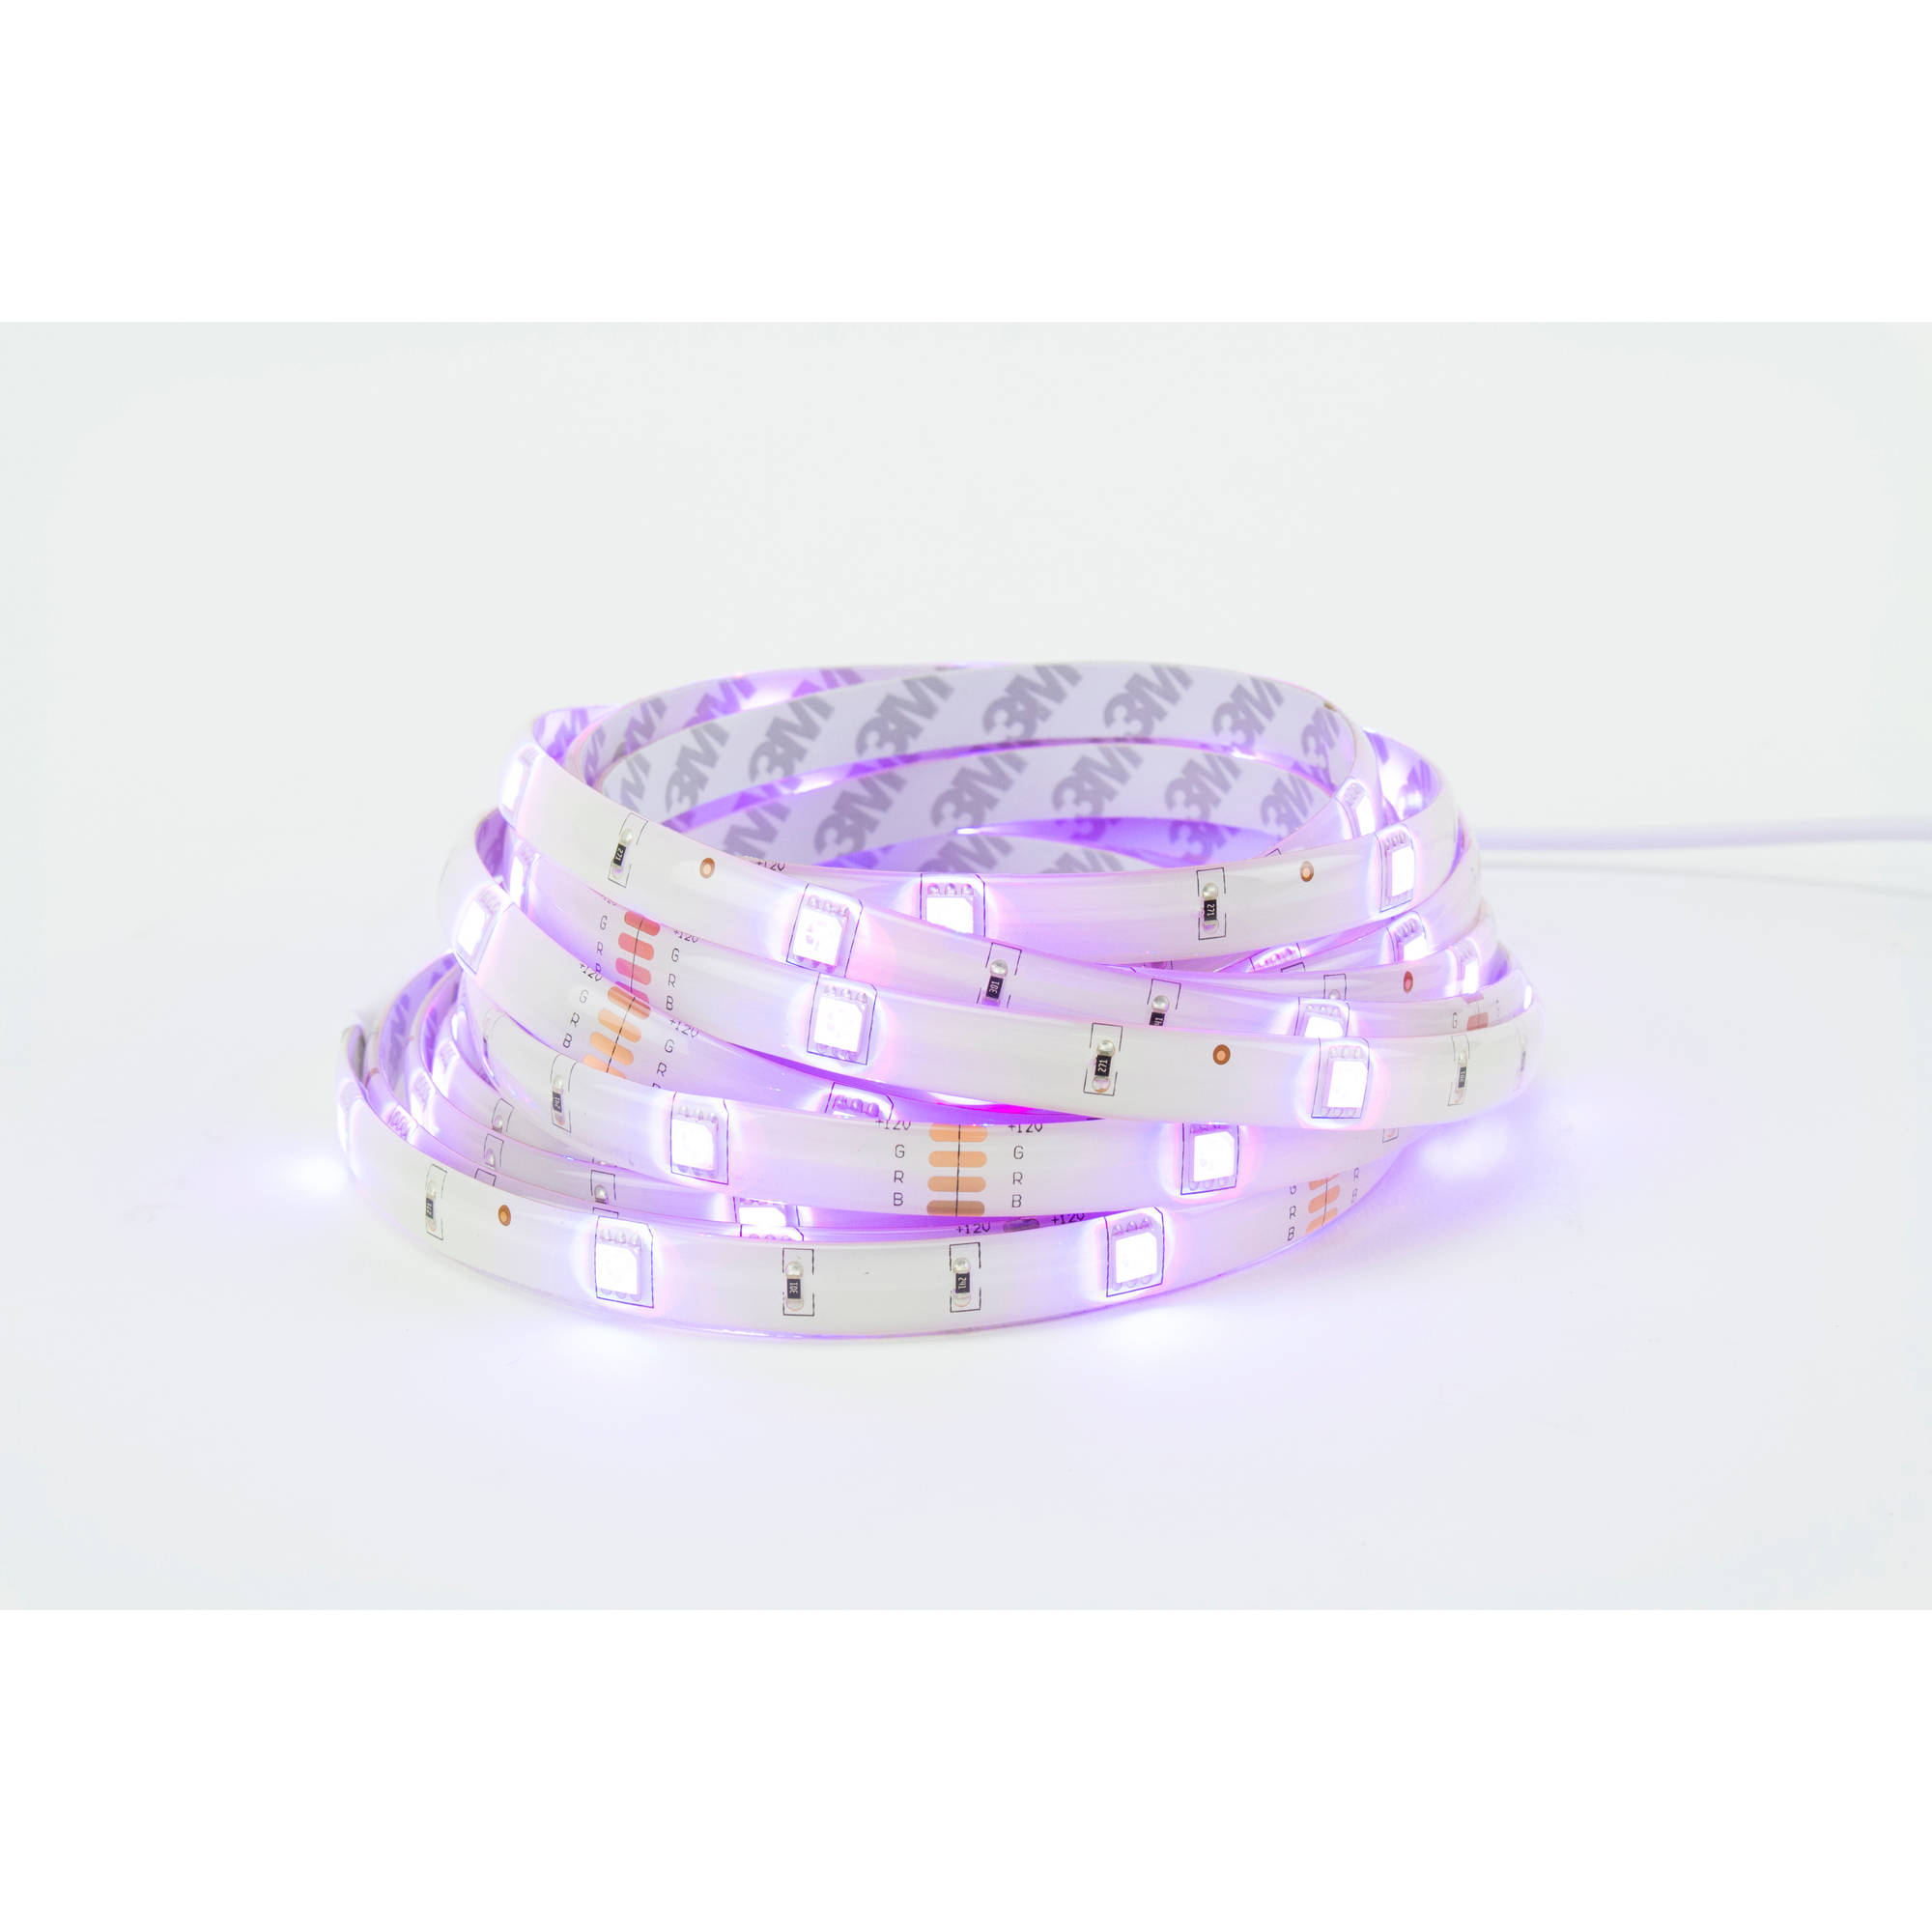 Mainstays LED Color Tape Light Walmart